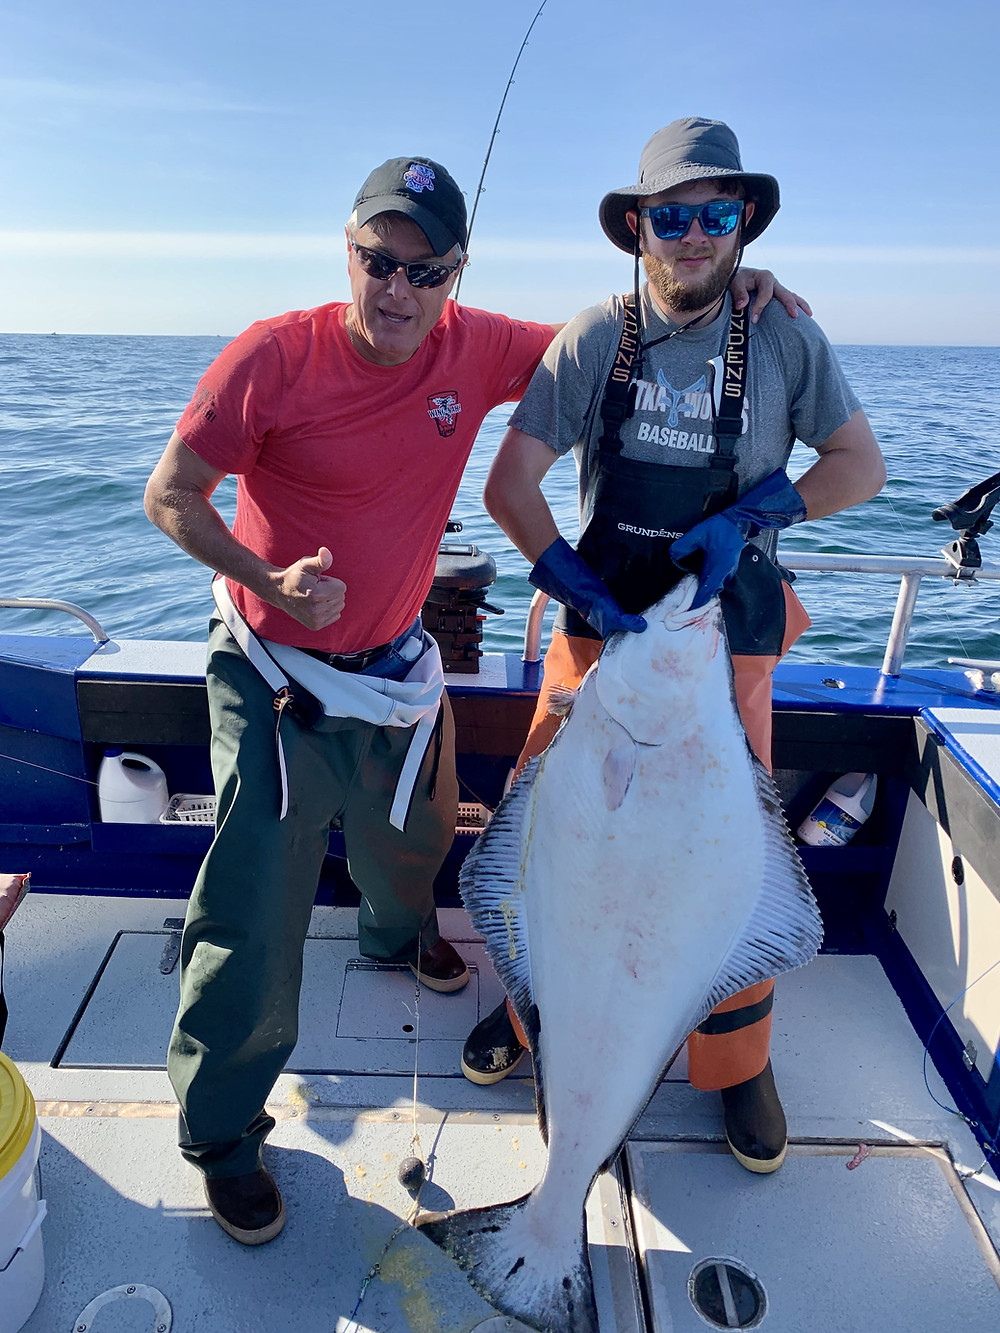 Where is the best place to fish for halibut in alaska